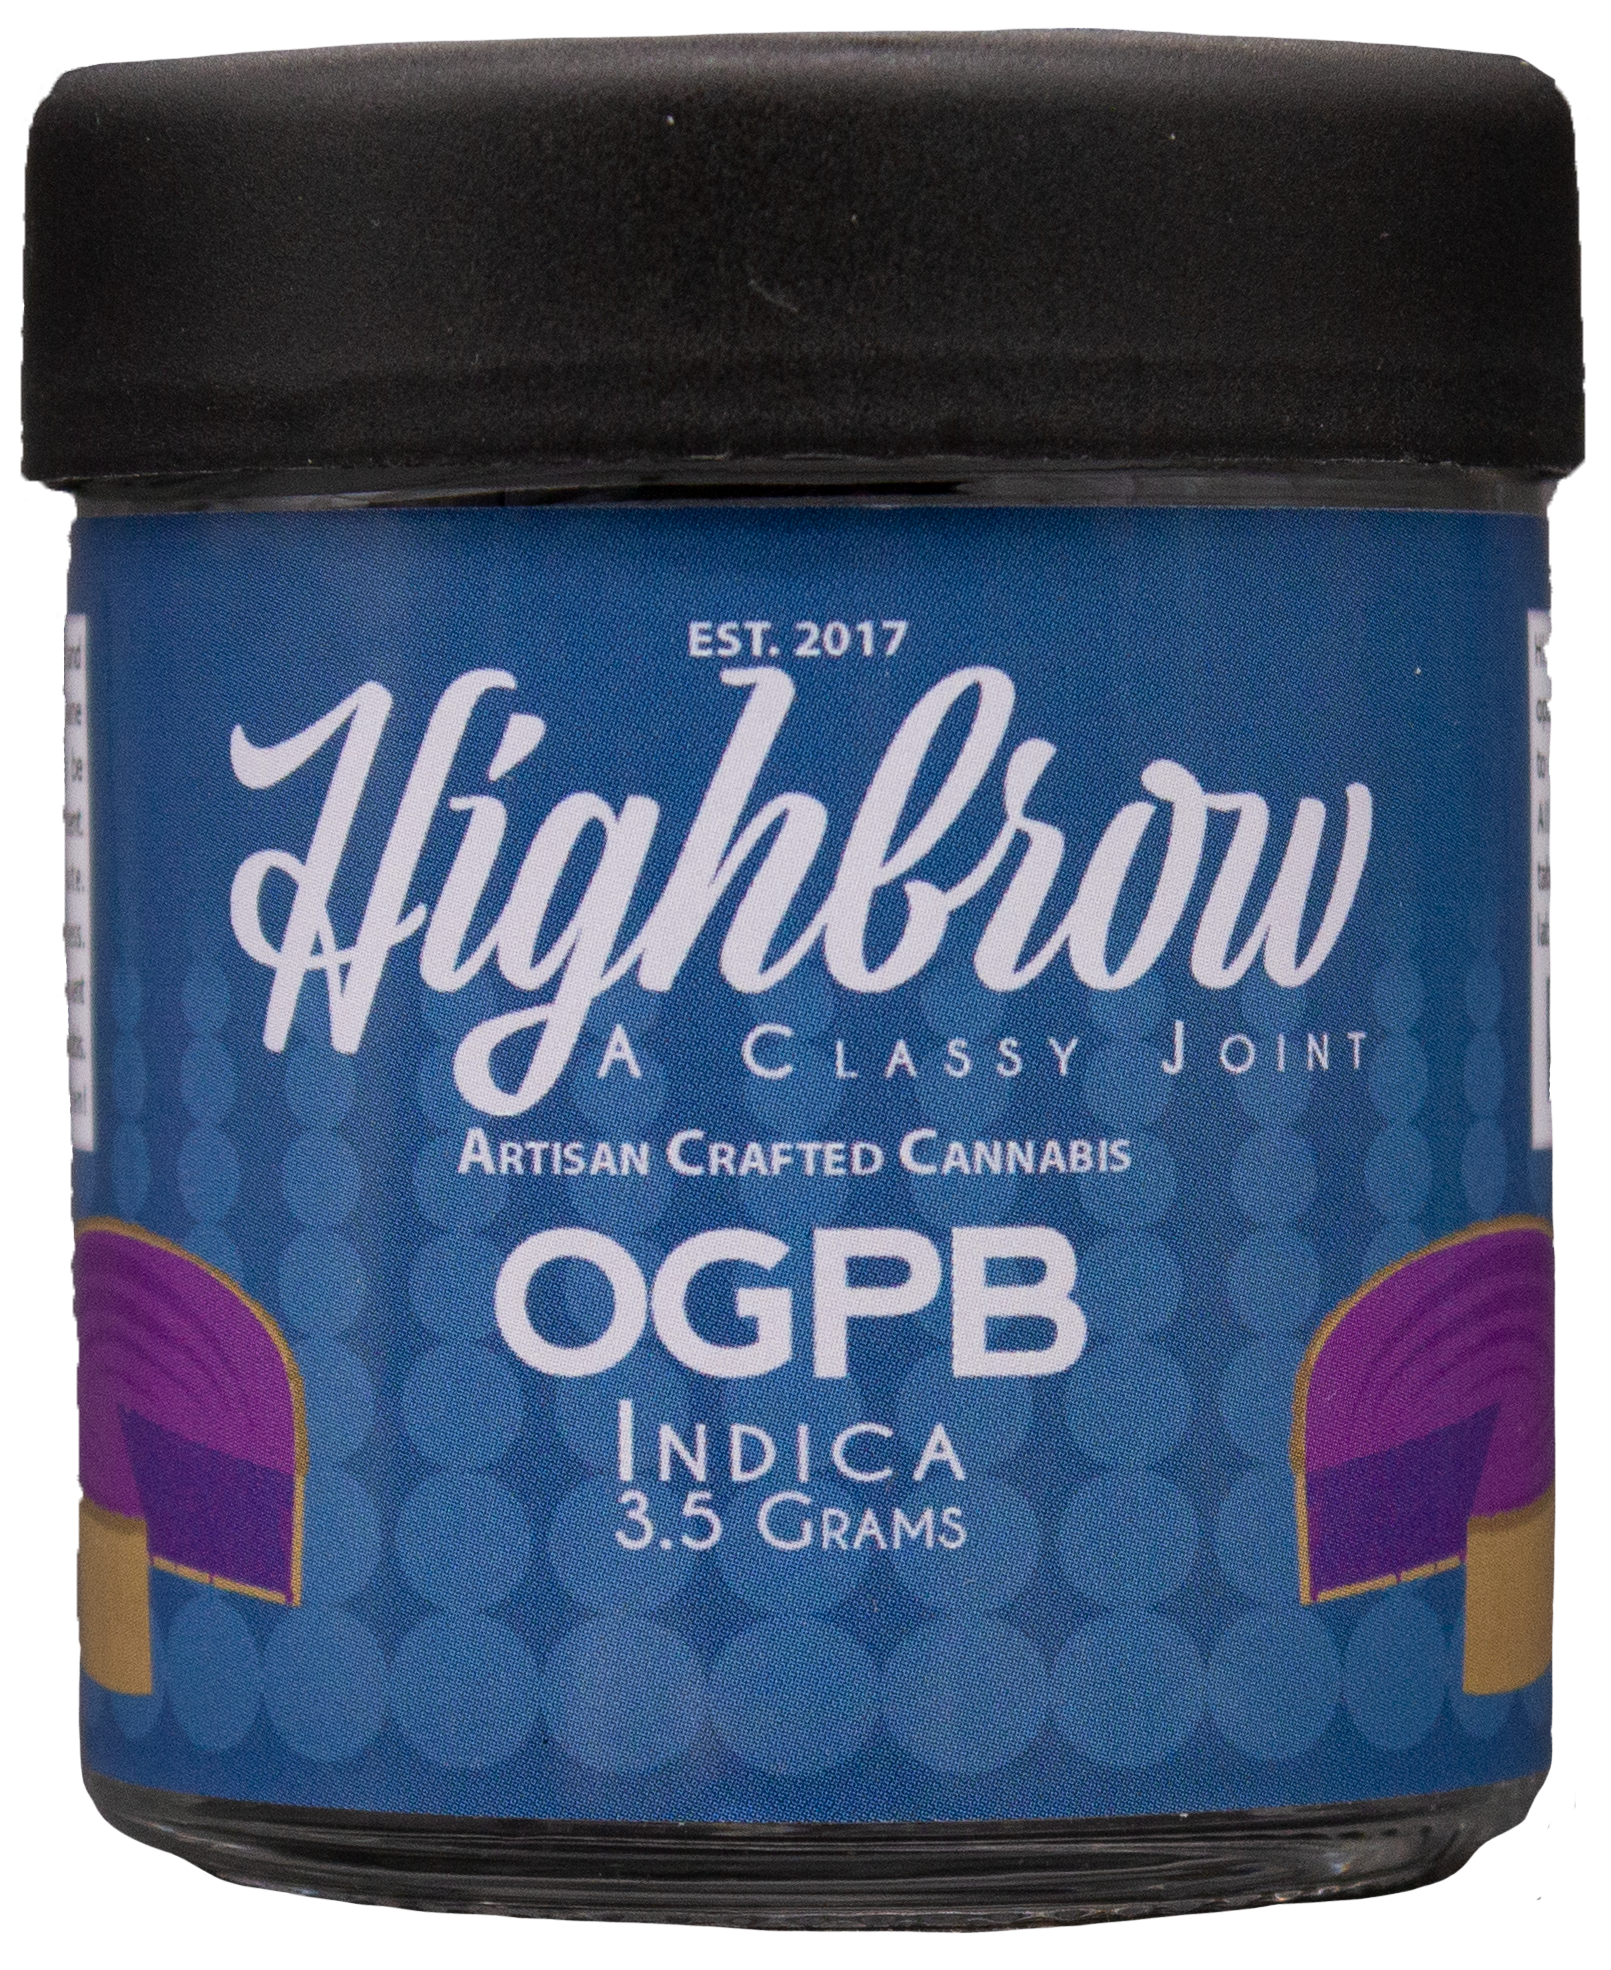 OGPB - The best kind of pie breath.